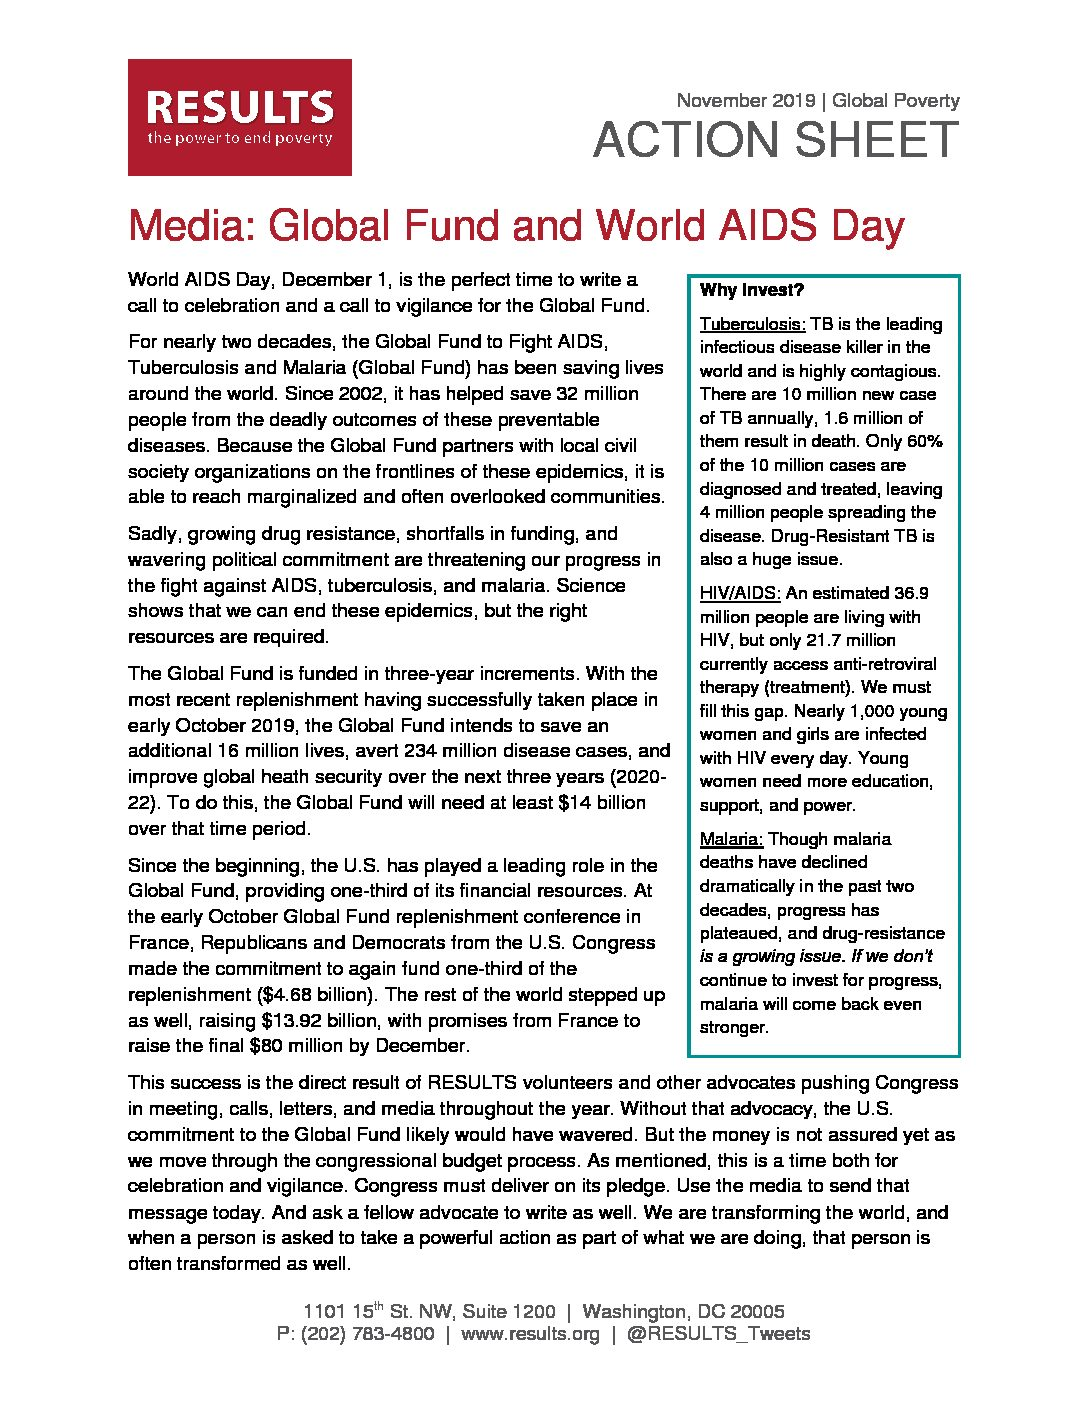 November 2019 Global Poverty Action - Media: Global Fund and World AIDS Day